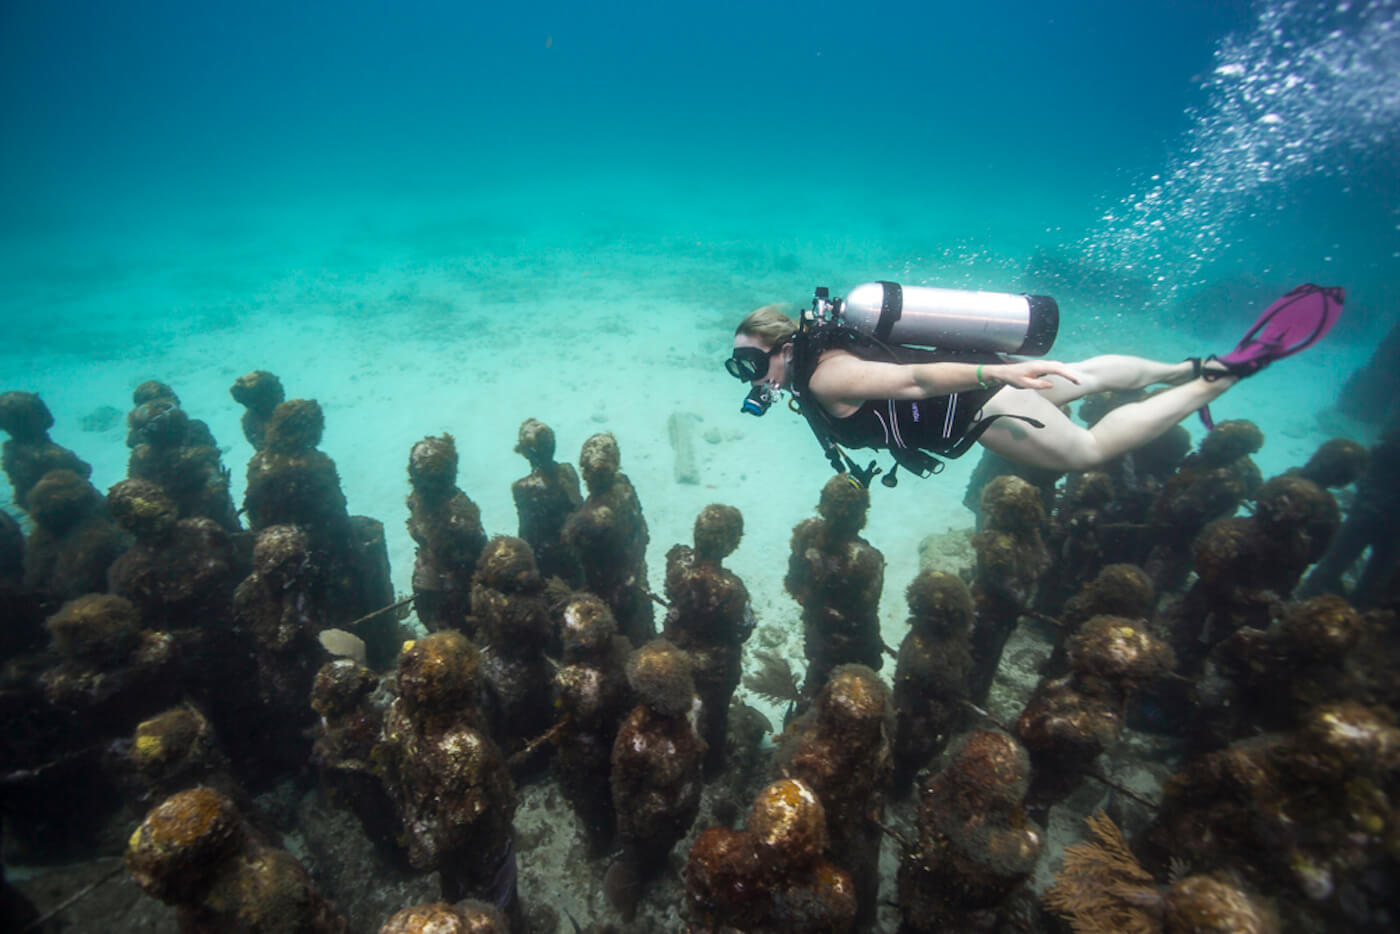 MUSA-Underwater-Museum-Cancun-Dive-Center-Caribbean-Connections-2